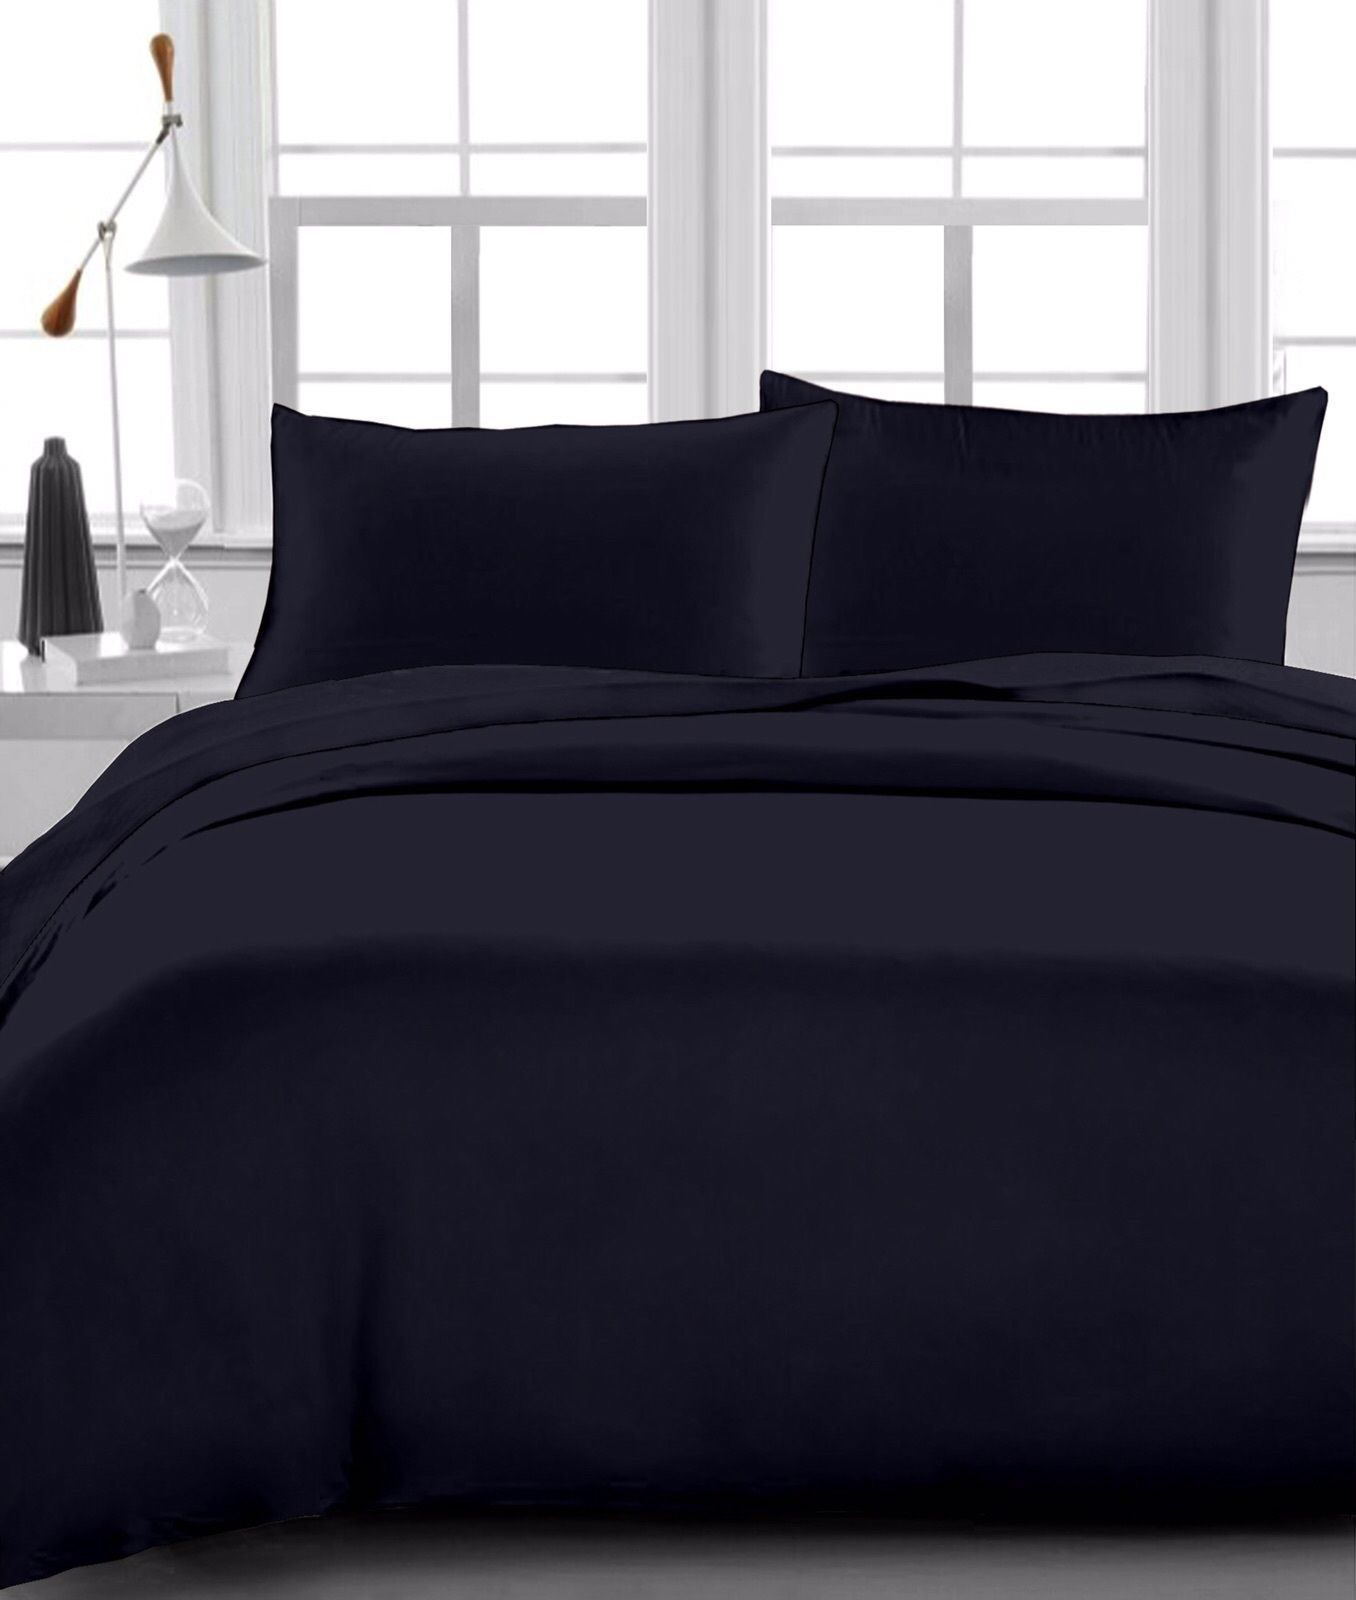 About white 1000tc egyptian cotton complete bedding collection sheet - Black Solid 4 Pcs Sheet Set 1000 Tc 15 Inch Drop 100 Egyptian Cotton